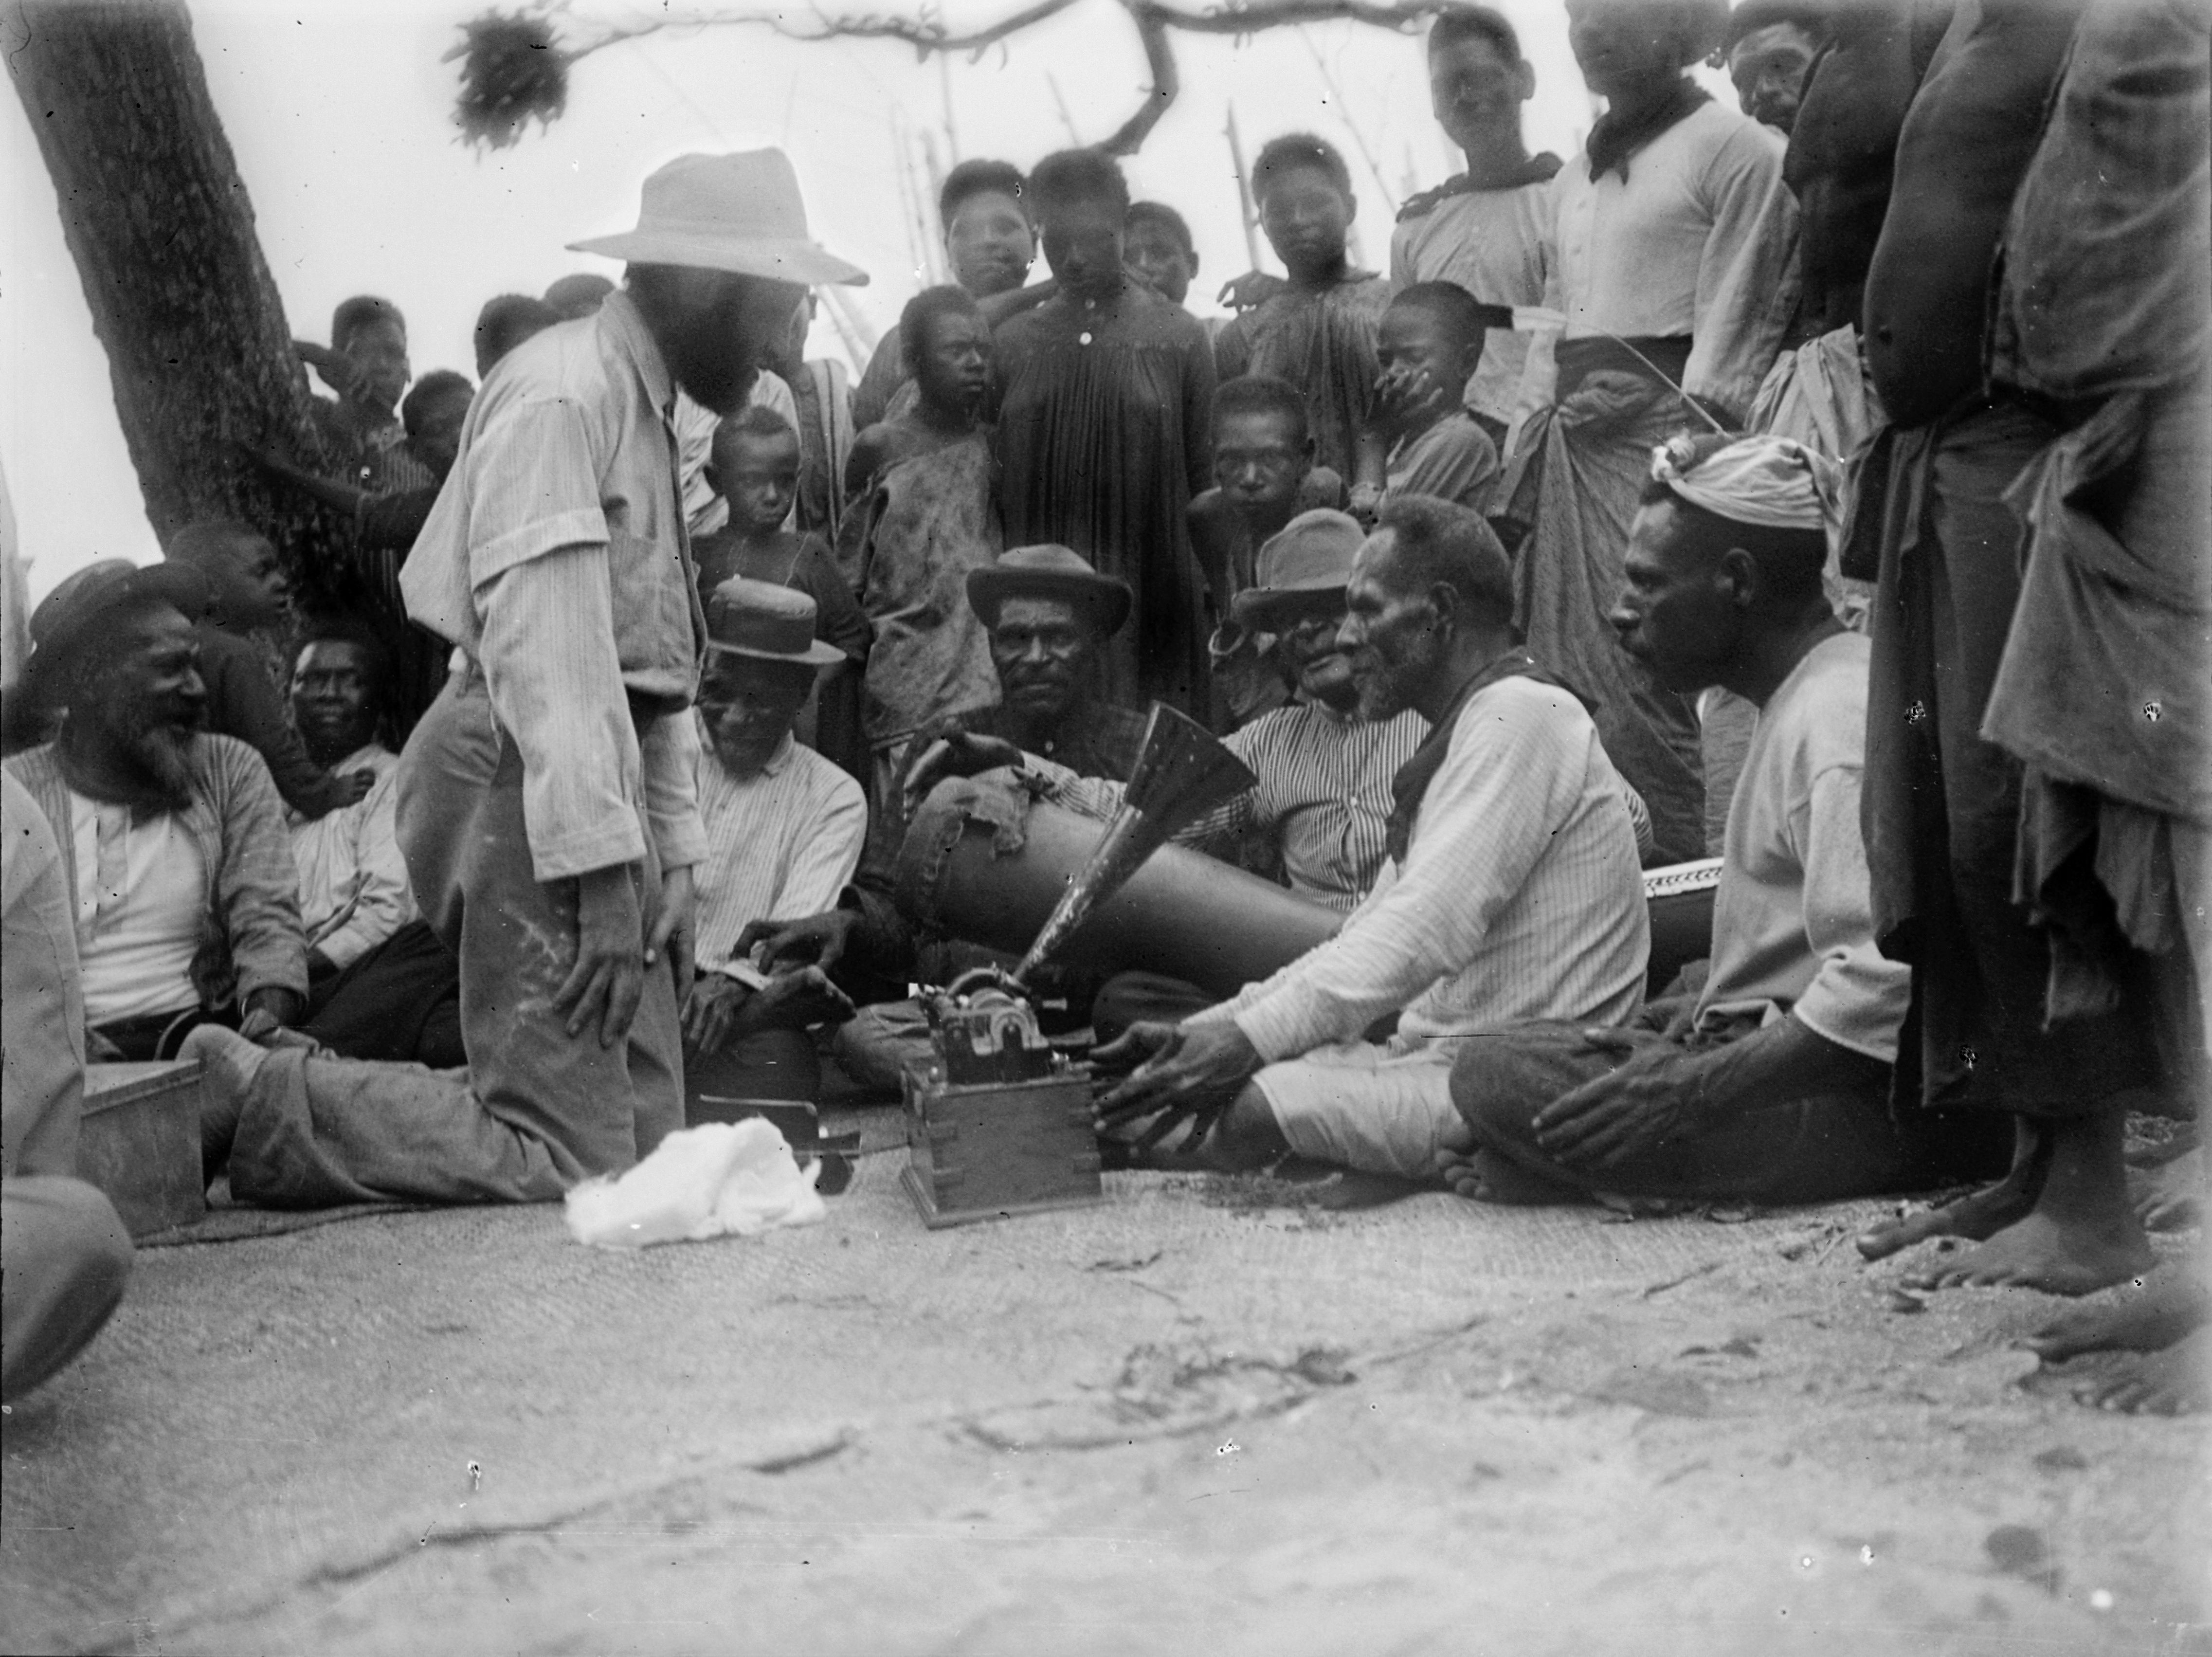 Charles Myers recording the sacred songs of the Malo ceremony, with Ulai singing into the phonograph and Gusu playing the drum Wasikor. Mer, Torres Strait, Australia. July 1898. [N.23209.ACH2] Image courtesy of the Cambridge Museum of Archaeology and Anthropology